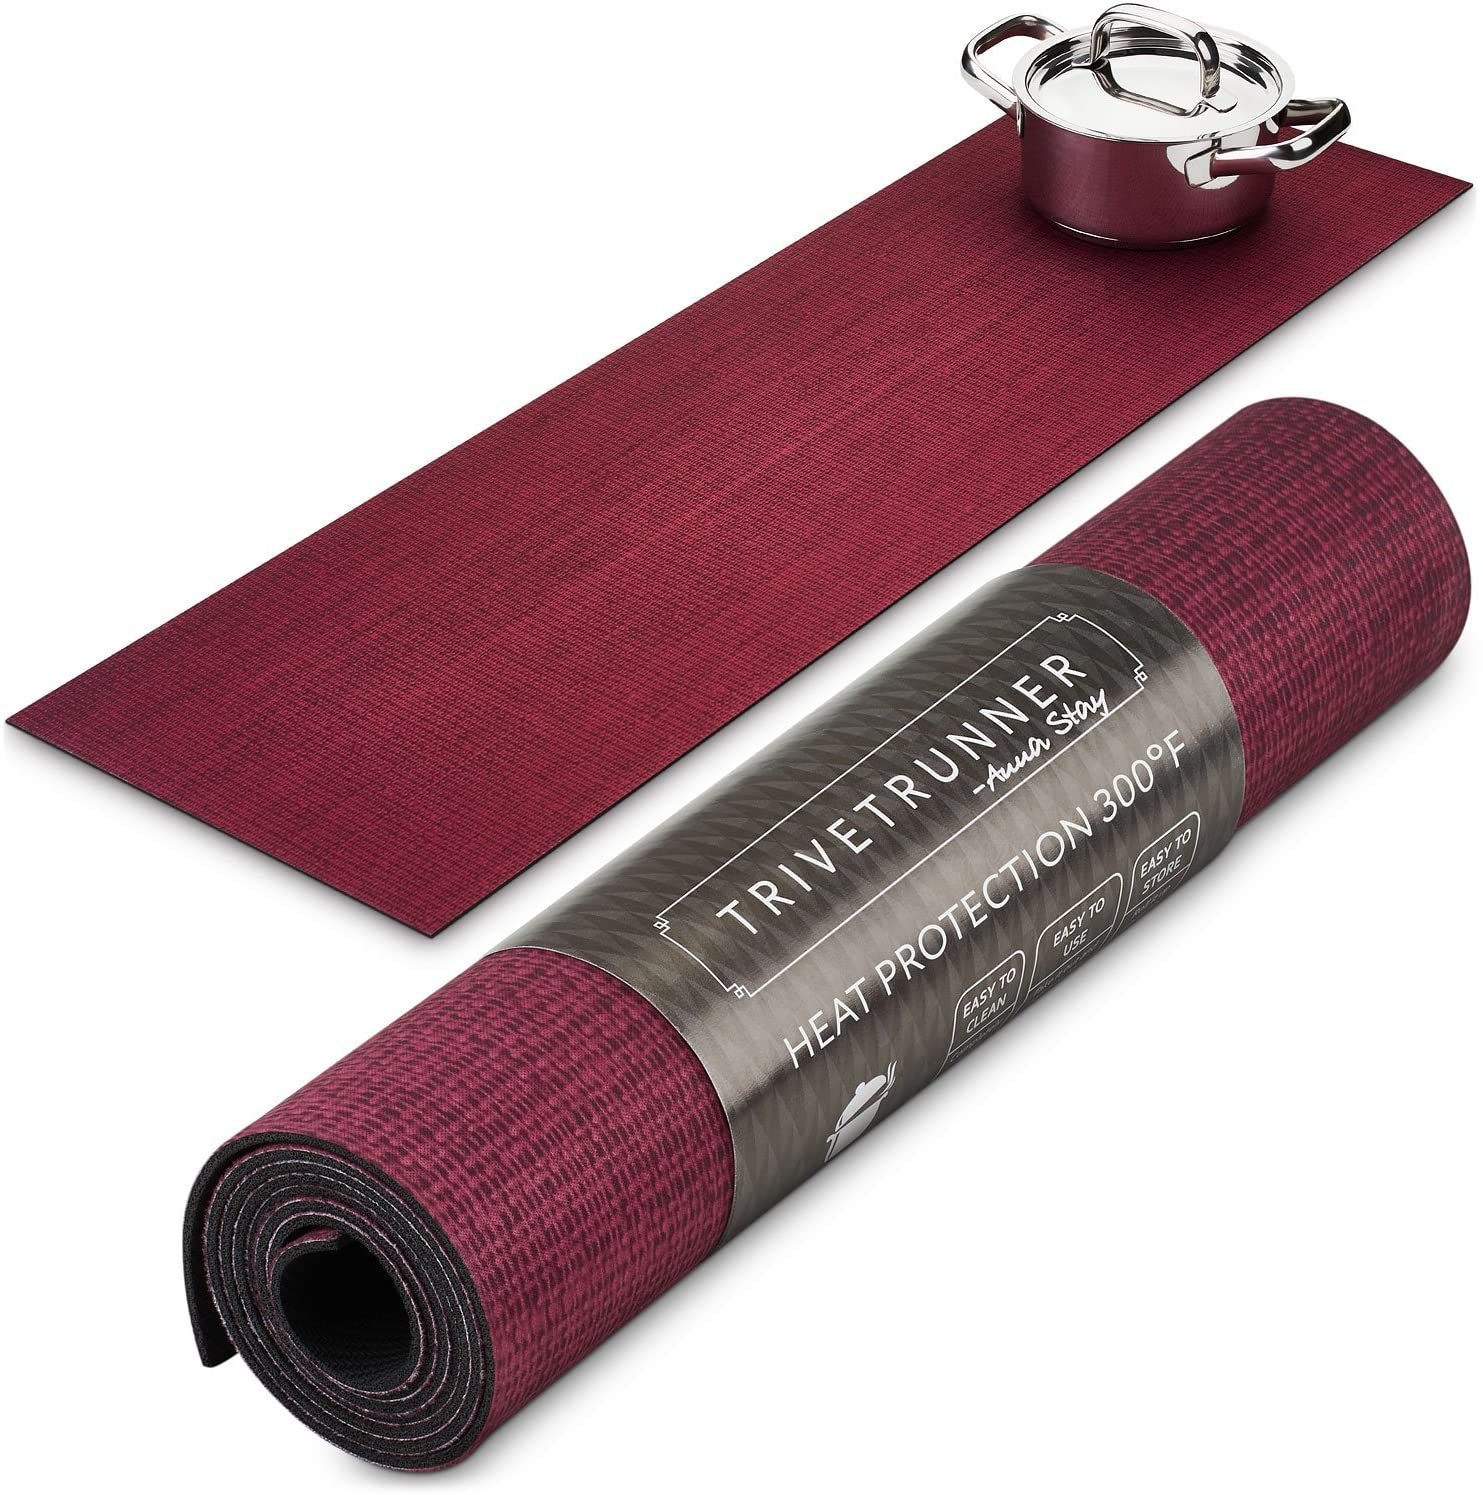 ANNA STAY | DECORATIVE TRIVET & KITCHEN TABLE RUNNERS | LONG | BURGUNDY